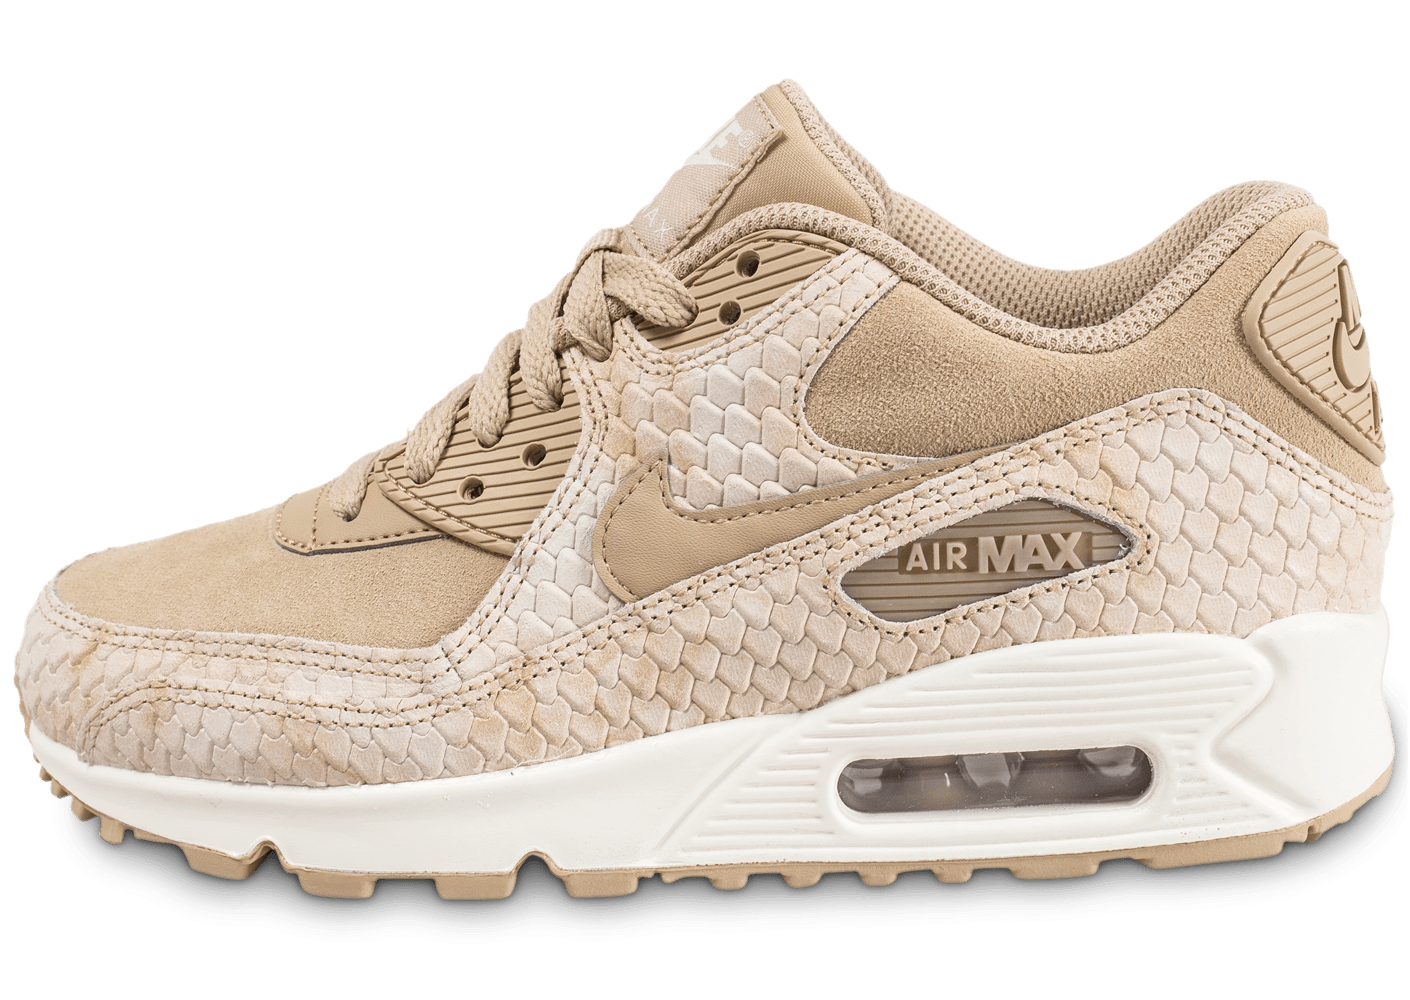 reputable site bcd27 486dc Nike Air Max 90 Premium beige - Chaussures Baskets femme - C